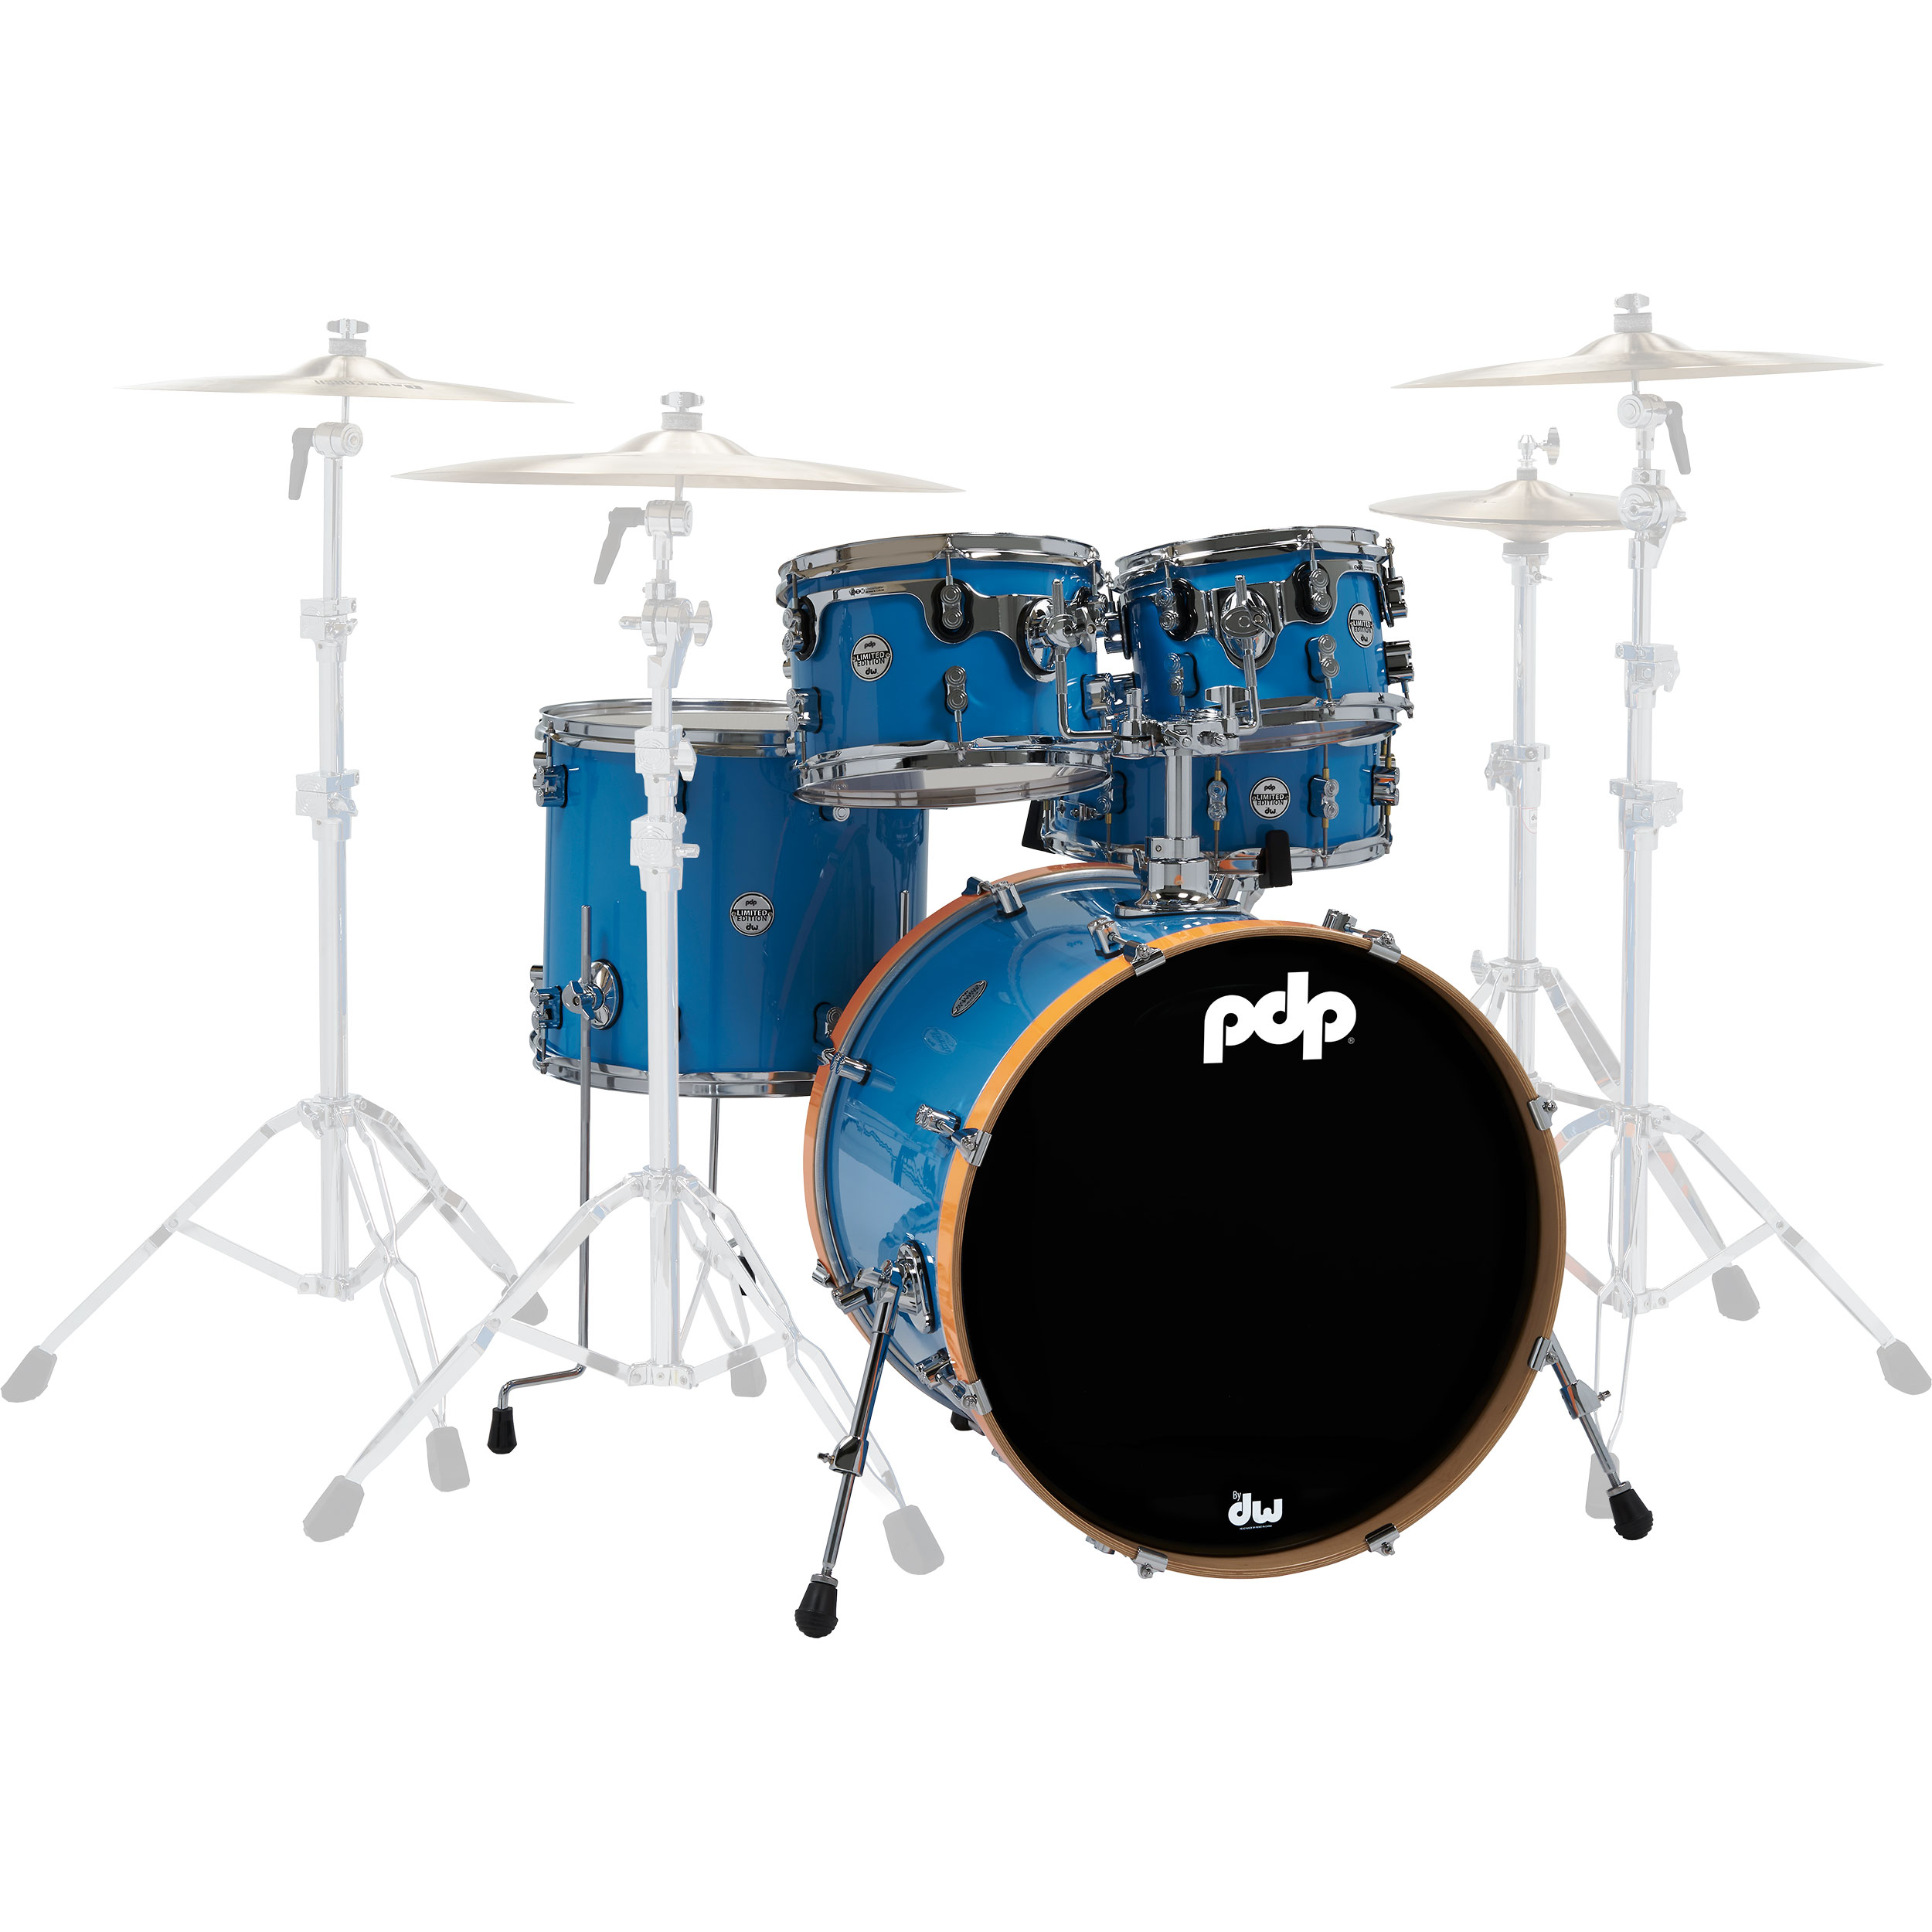 "PDP Limited Edition Concept Series 5-Piece Drum Set Shell Pack (22"" Bass, 10/12/16"" Toms, 14"" Snare) in Blue Lacquer with Orange Hoops"